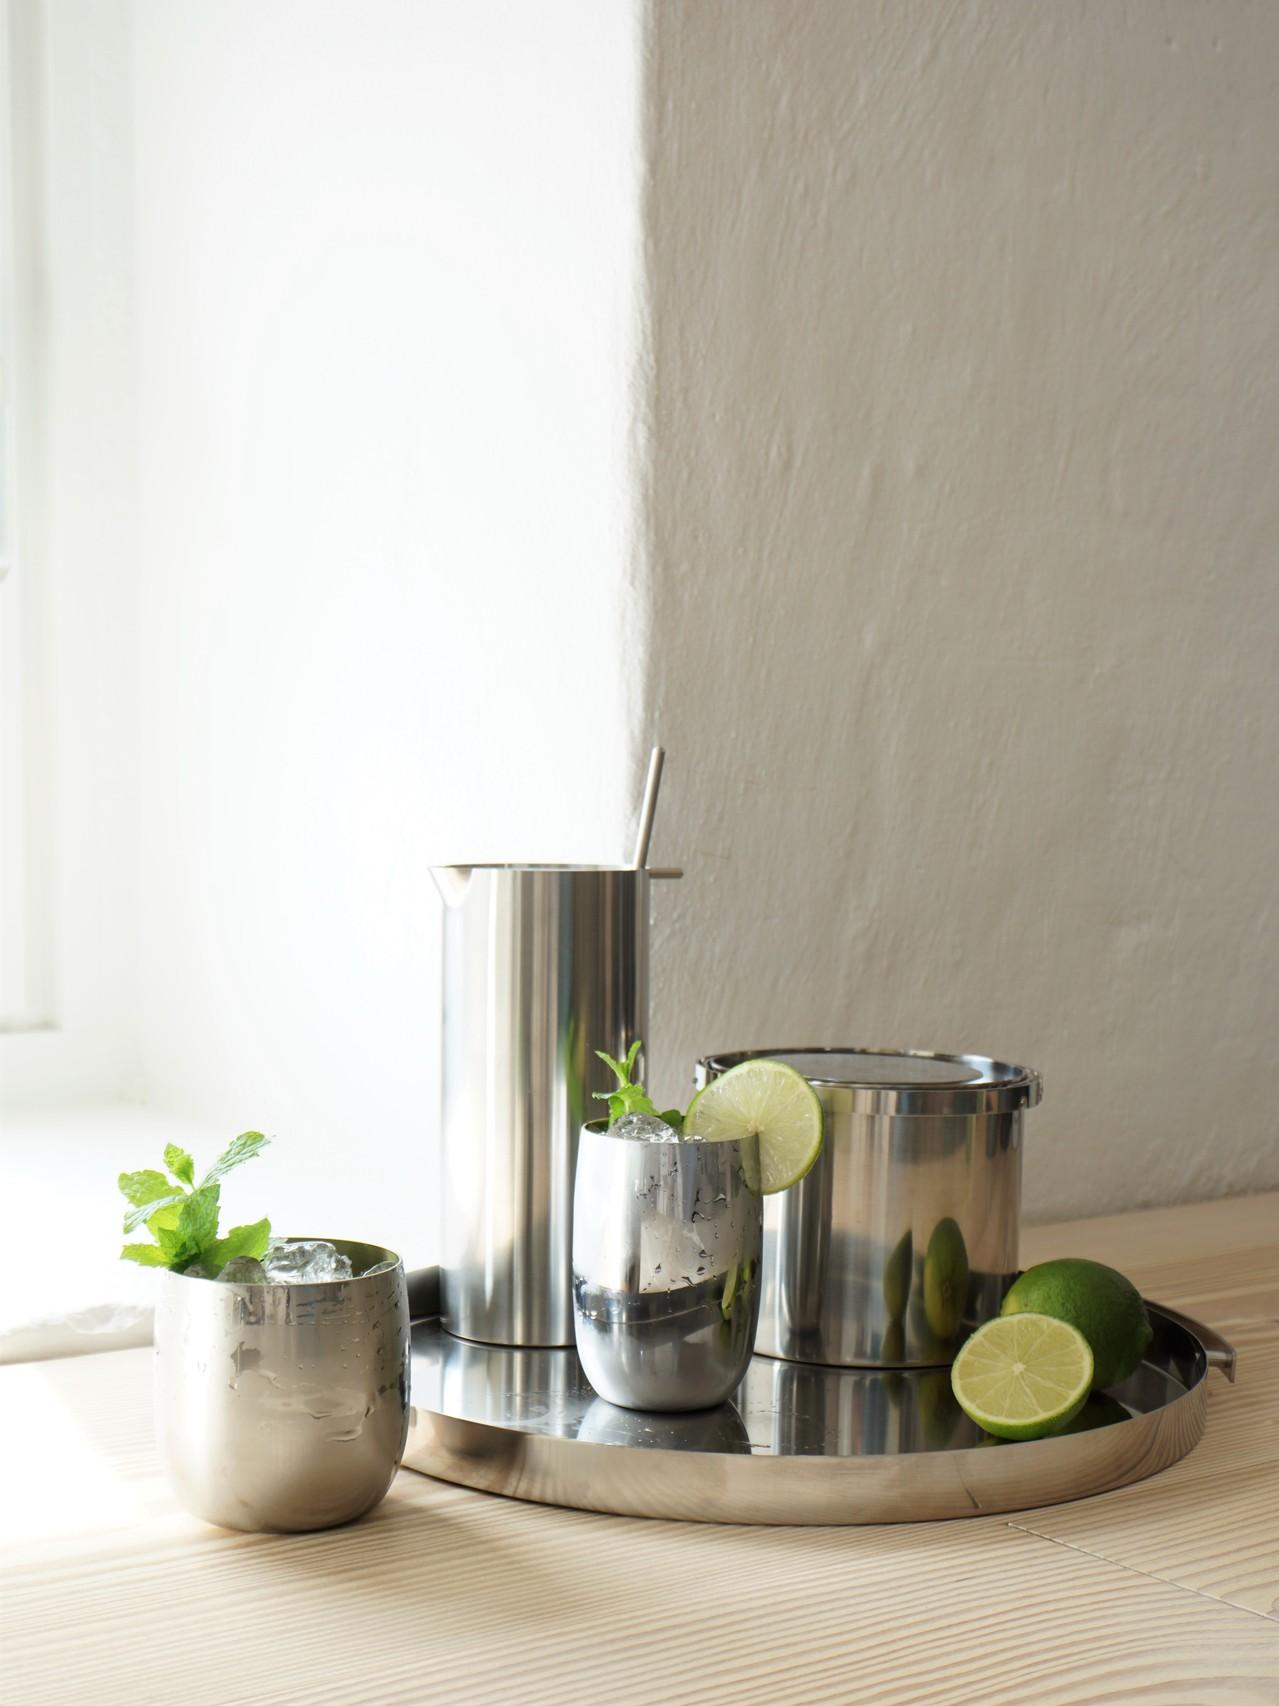 Picture of: Stelton On Twitter Cocktail Time Steltondesign Stelton Friday Fridayfeeling Drinkstime Drinks Homebar Hjemmebar Cocktailtime Cocktailtid Fredag Fridayfun Party Steelcups Icebucket Martinimixer Isspand Hjemmebar Https T Co